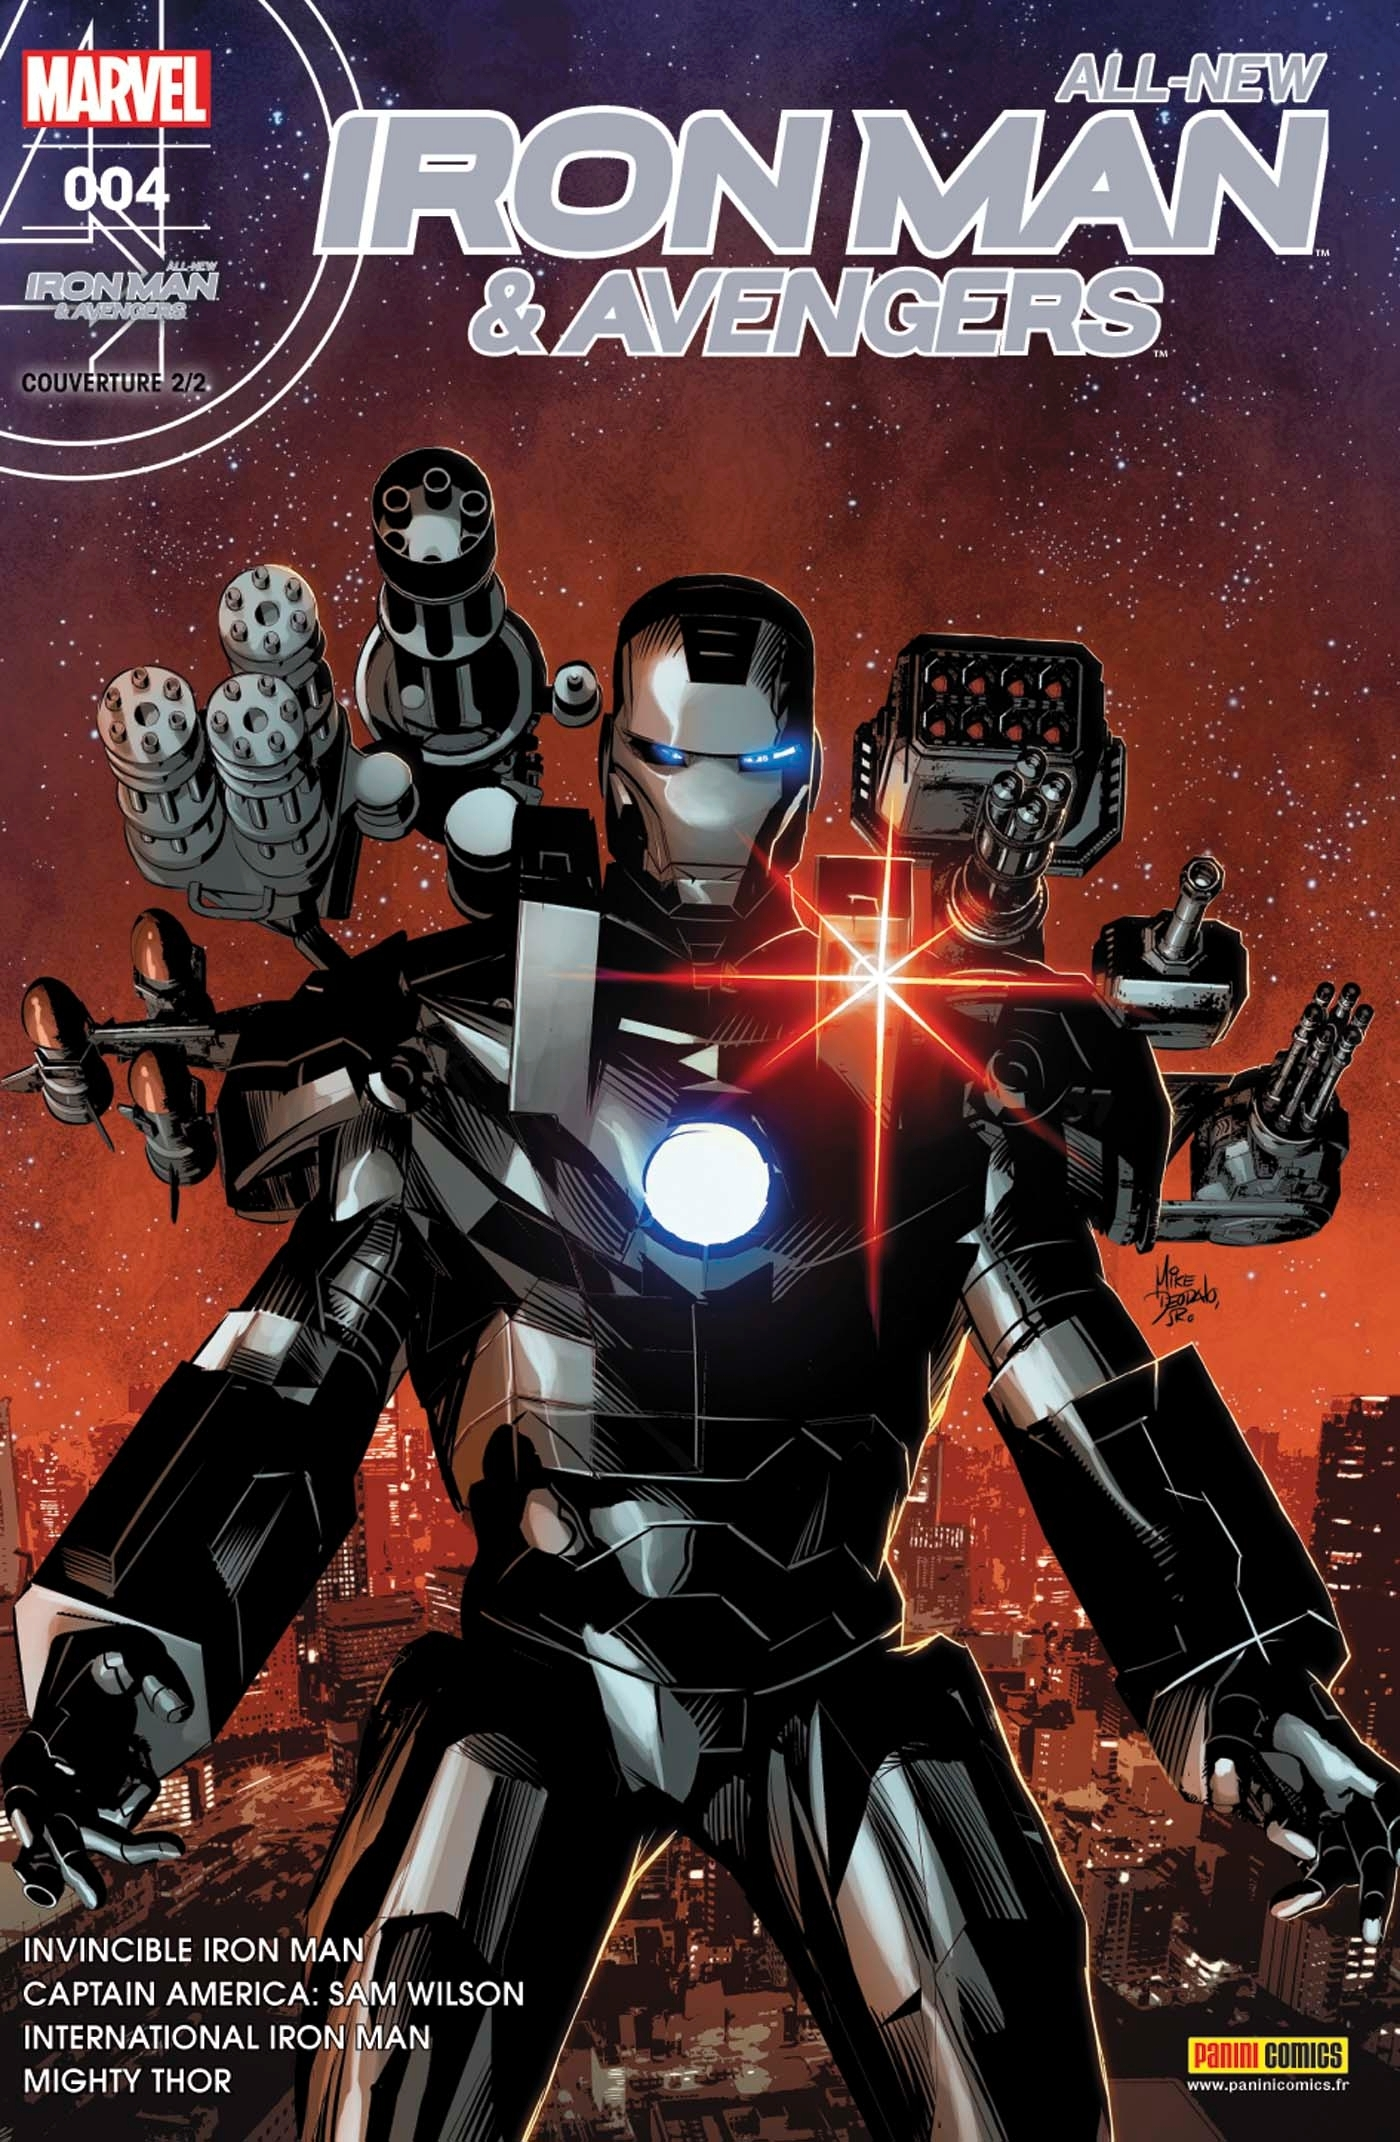 ALL-NEW IRON MAN & AVENGERS N  4 (COUVERTURE 2/2)